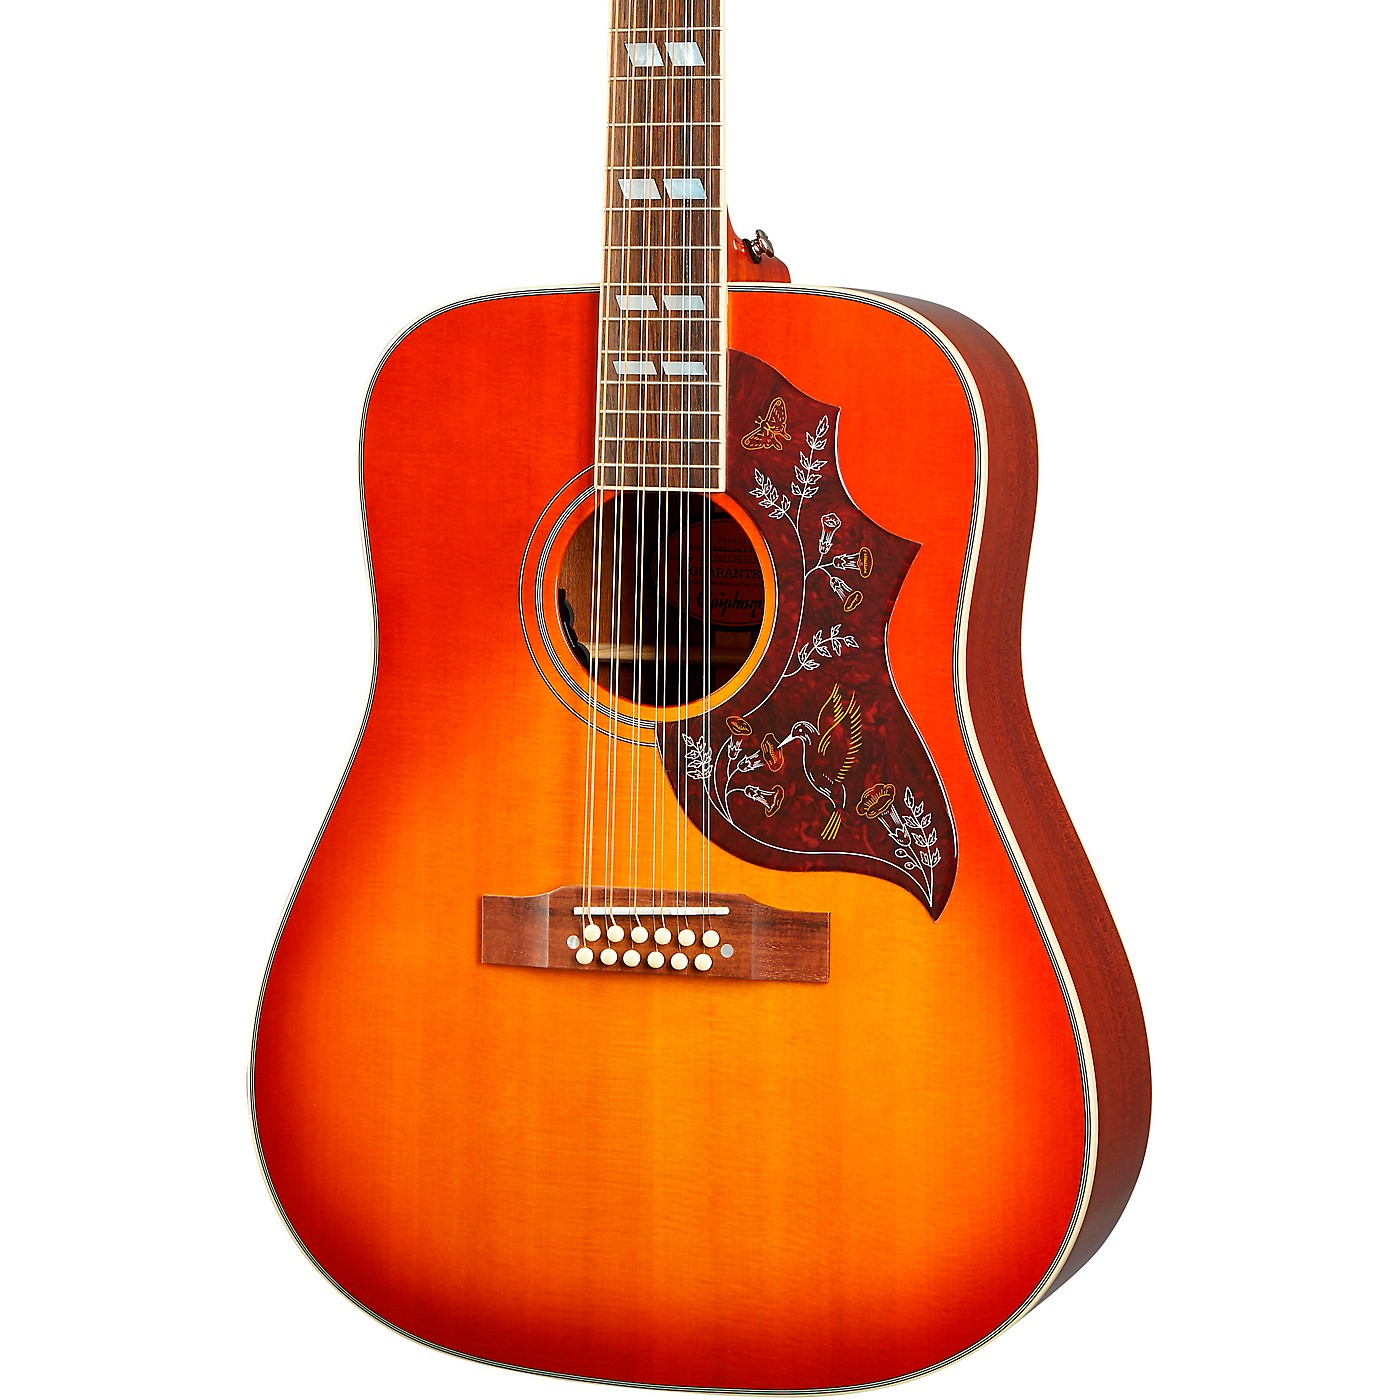 Epiphone Inspired by Gibson Hummingbird 12-String Acoustic-Electric Guitar thumbnail